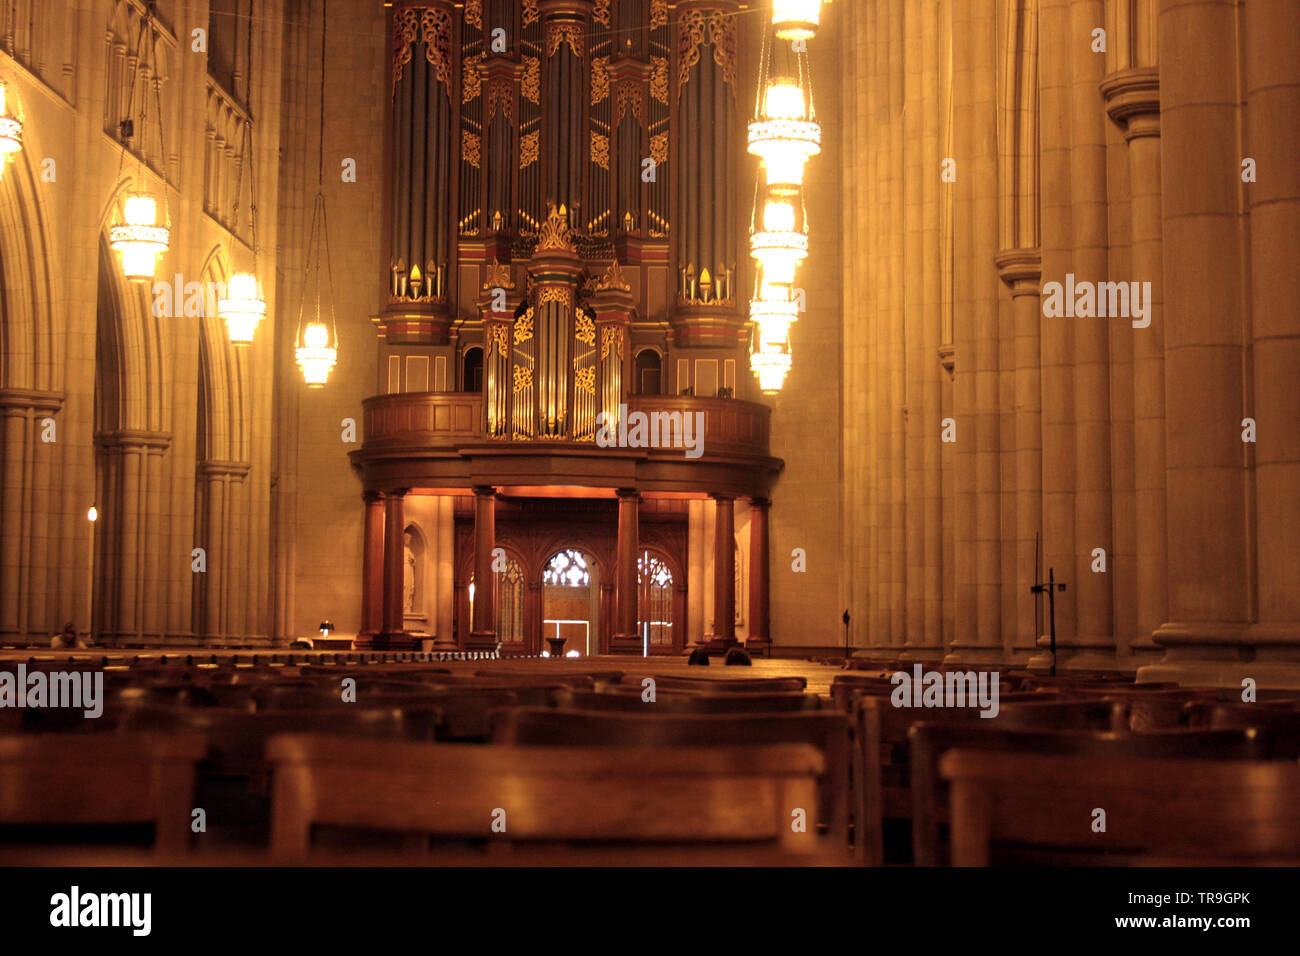 Interior of Duke Chapel, with the grand pipe organs in the back. Durham, NC, USA. - Stock Image